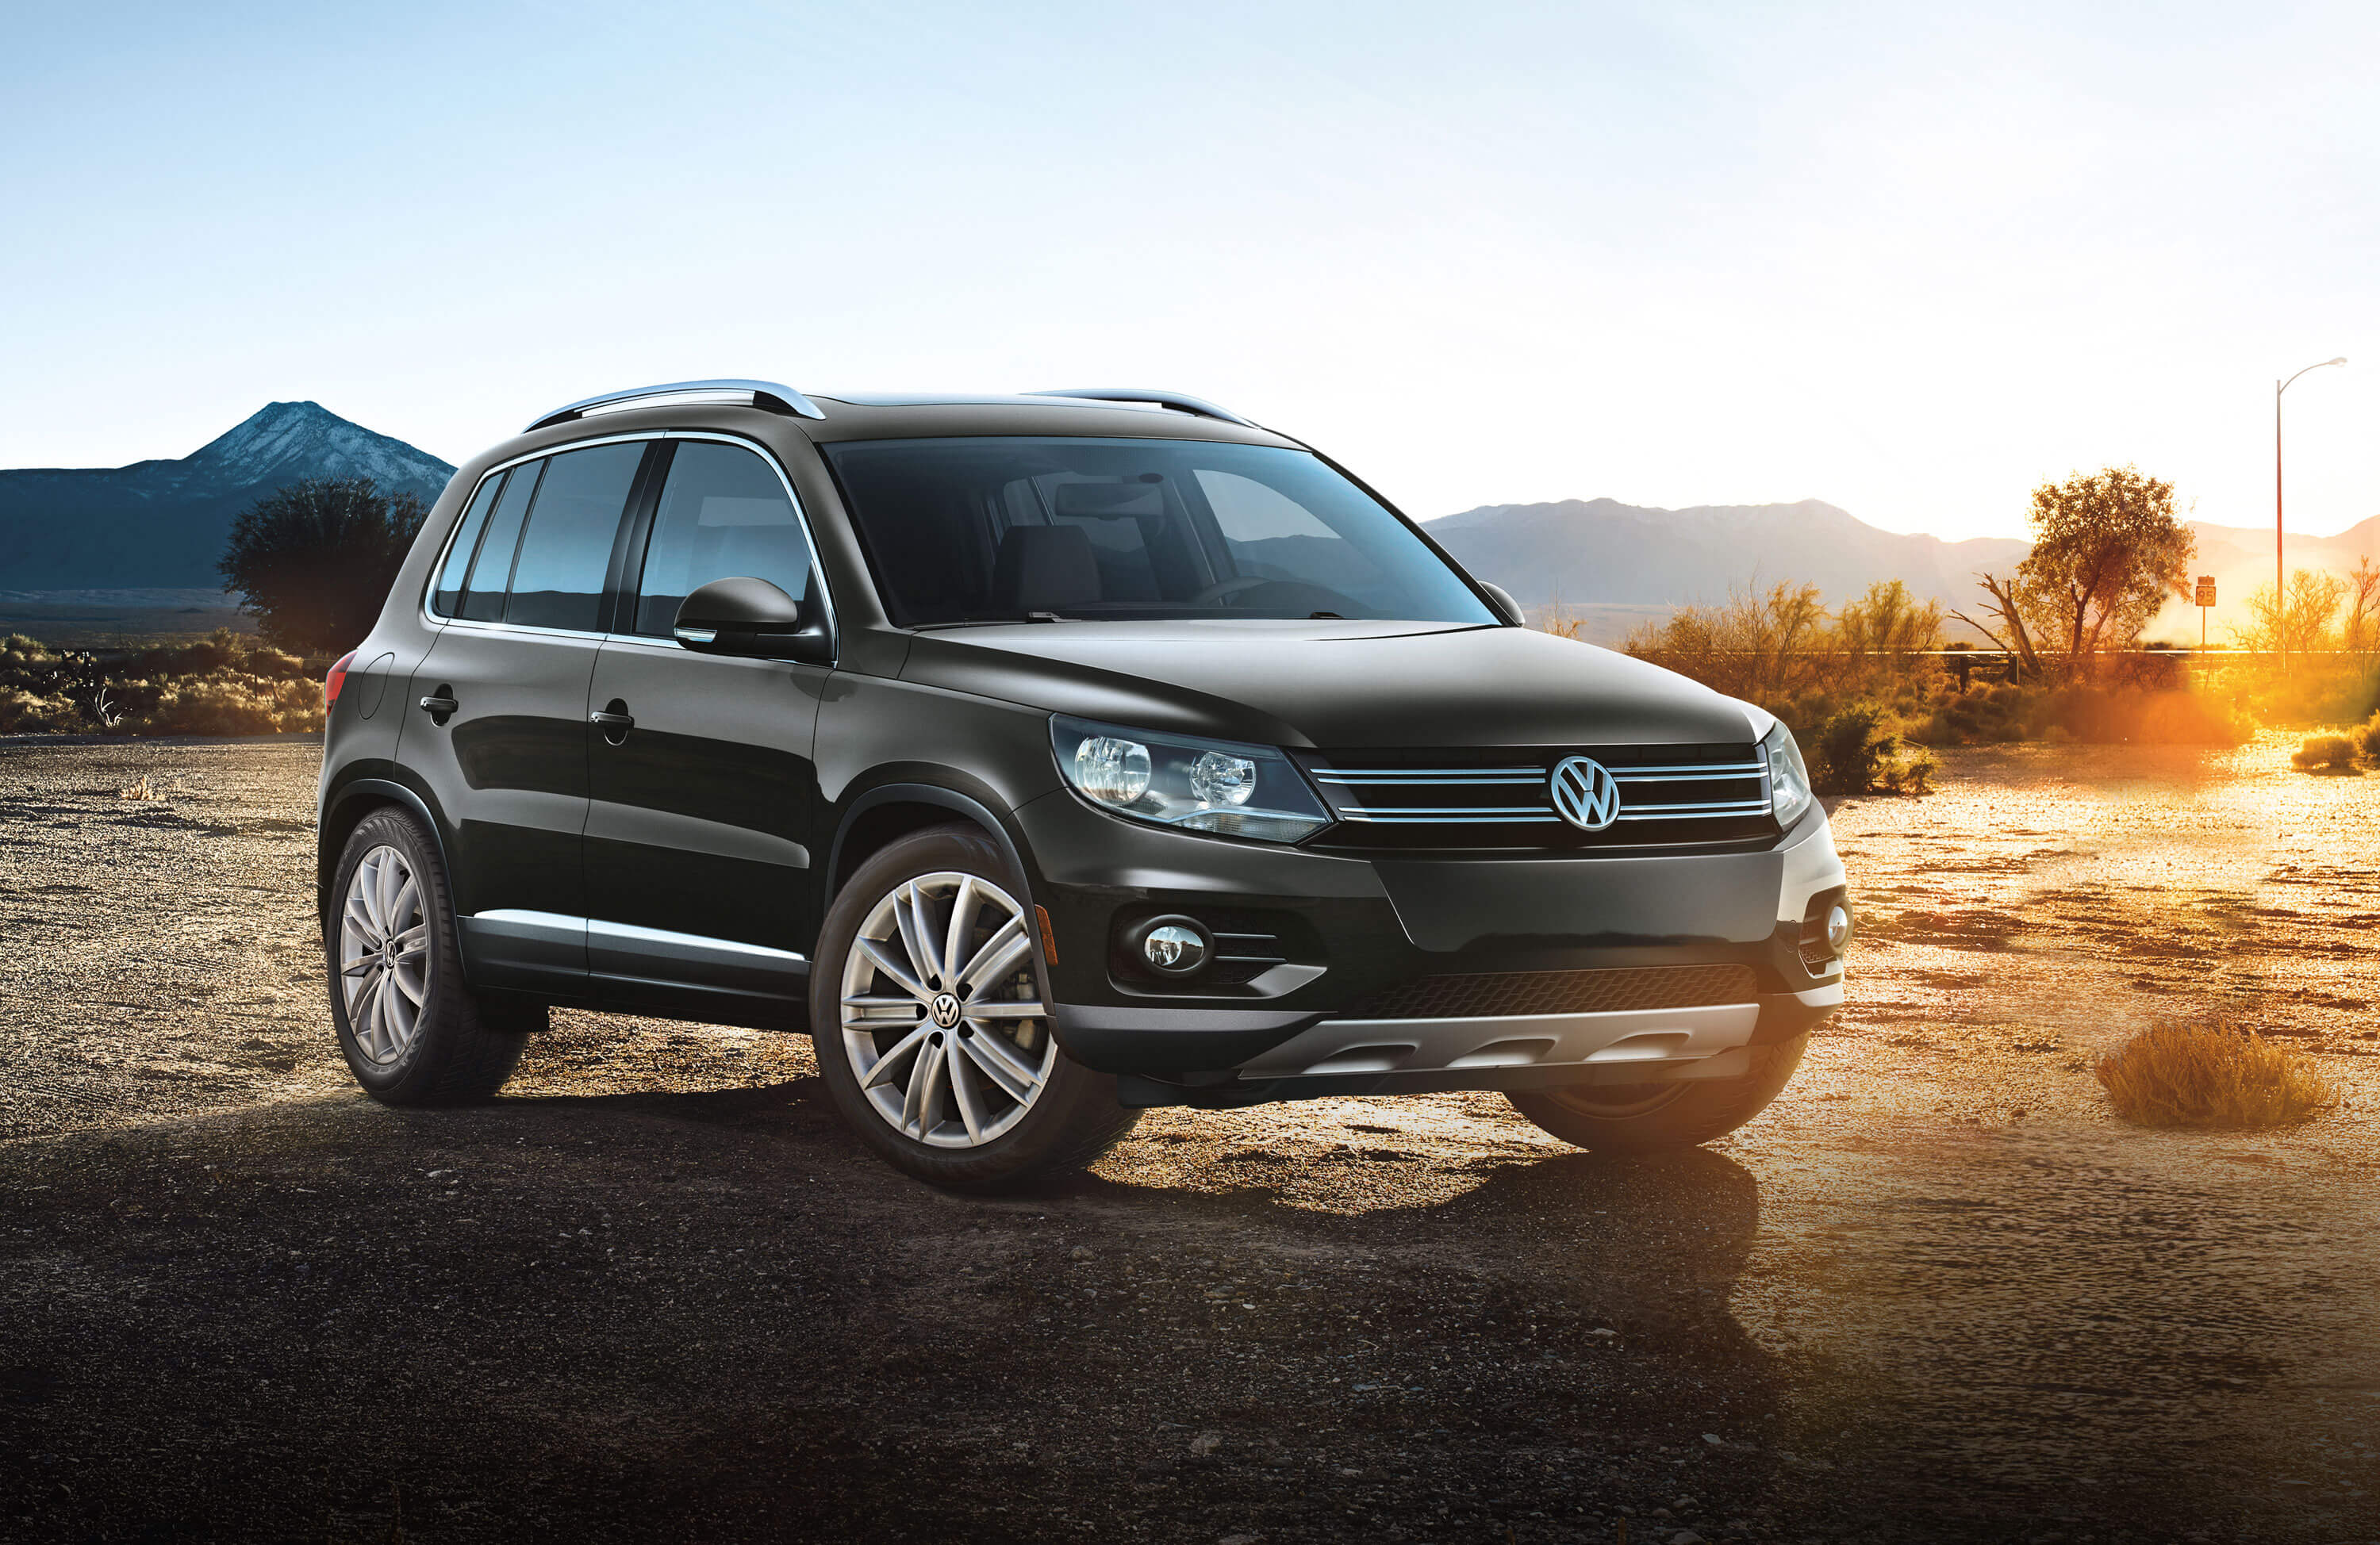 2015 volkswagen tiguan safety features norm reeves. Black Bedroom Furniture Sets. Home Design Ideas